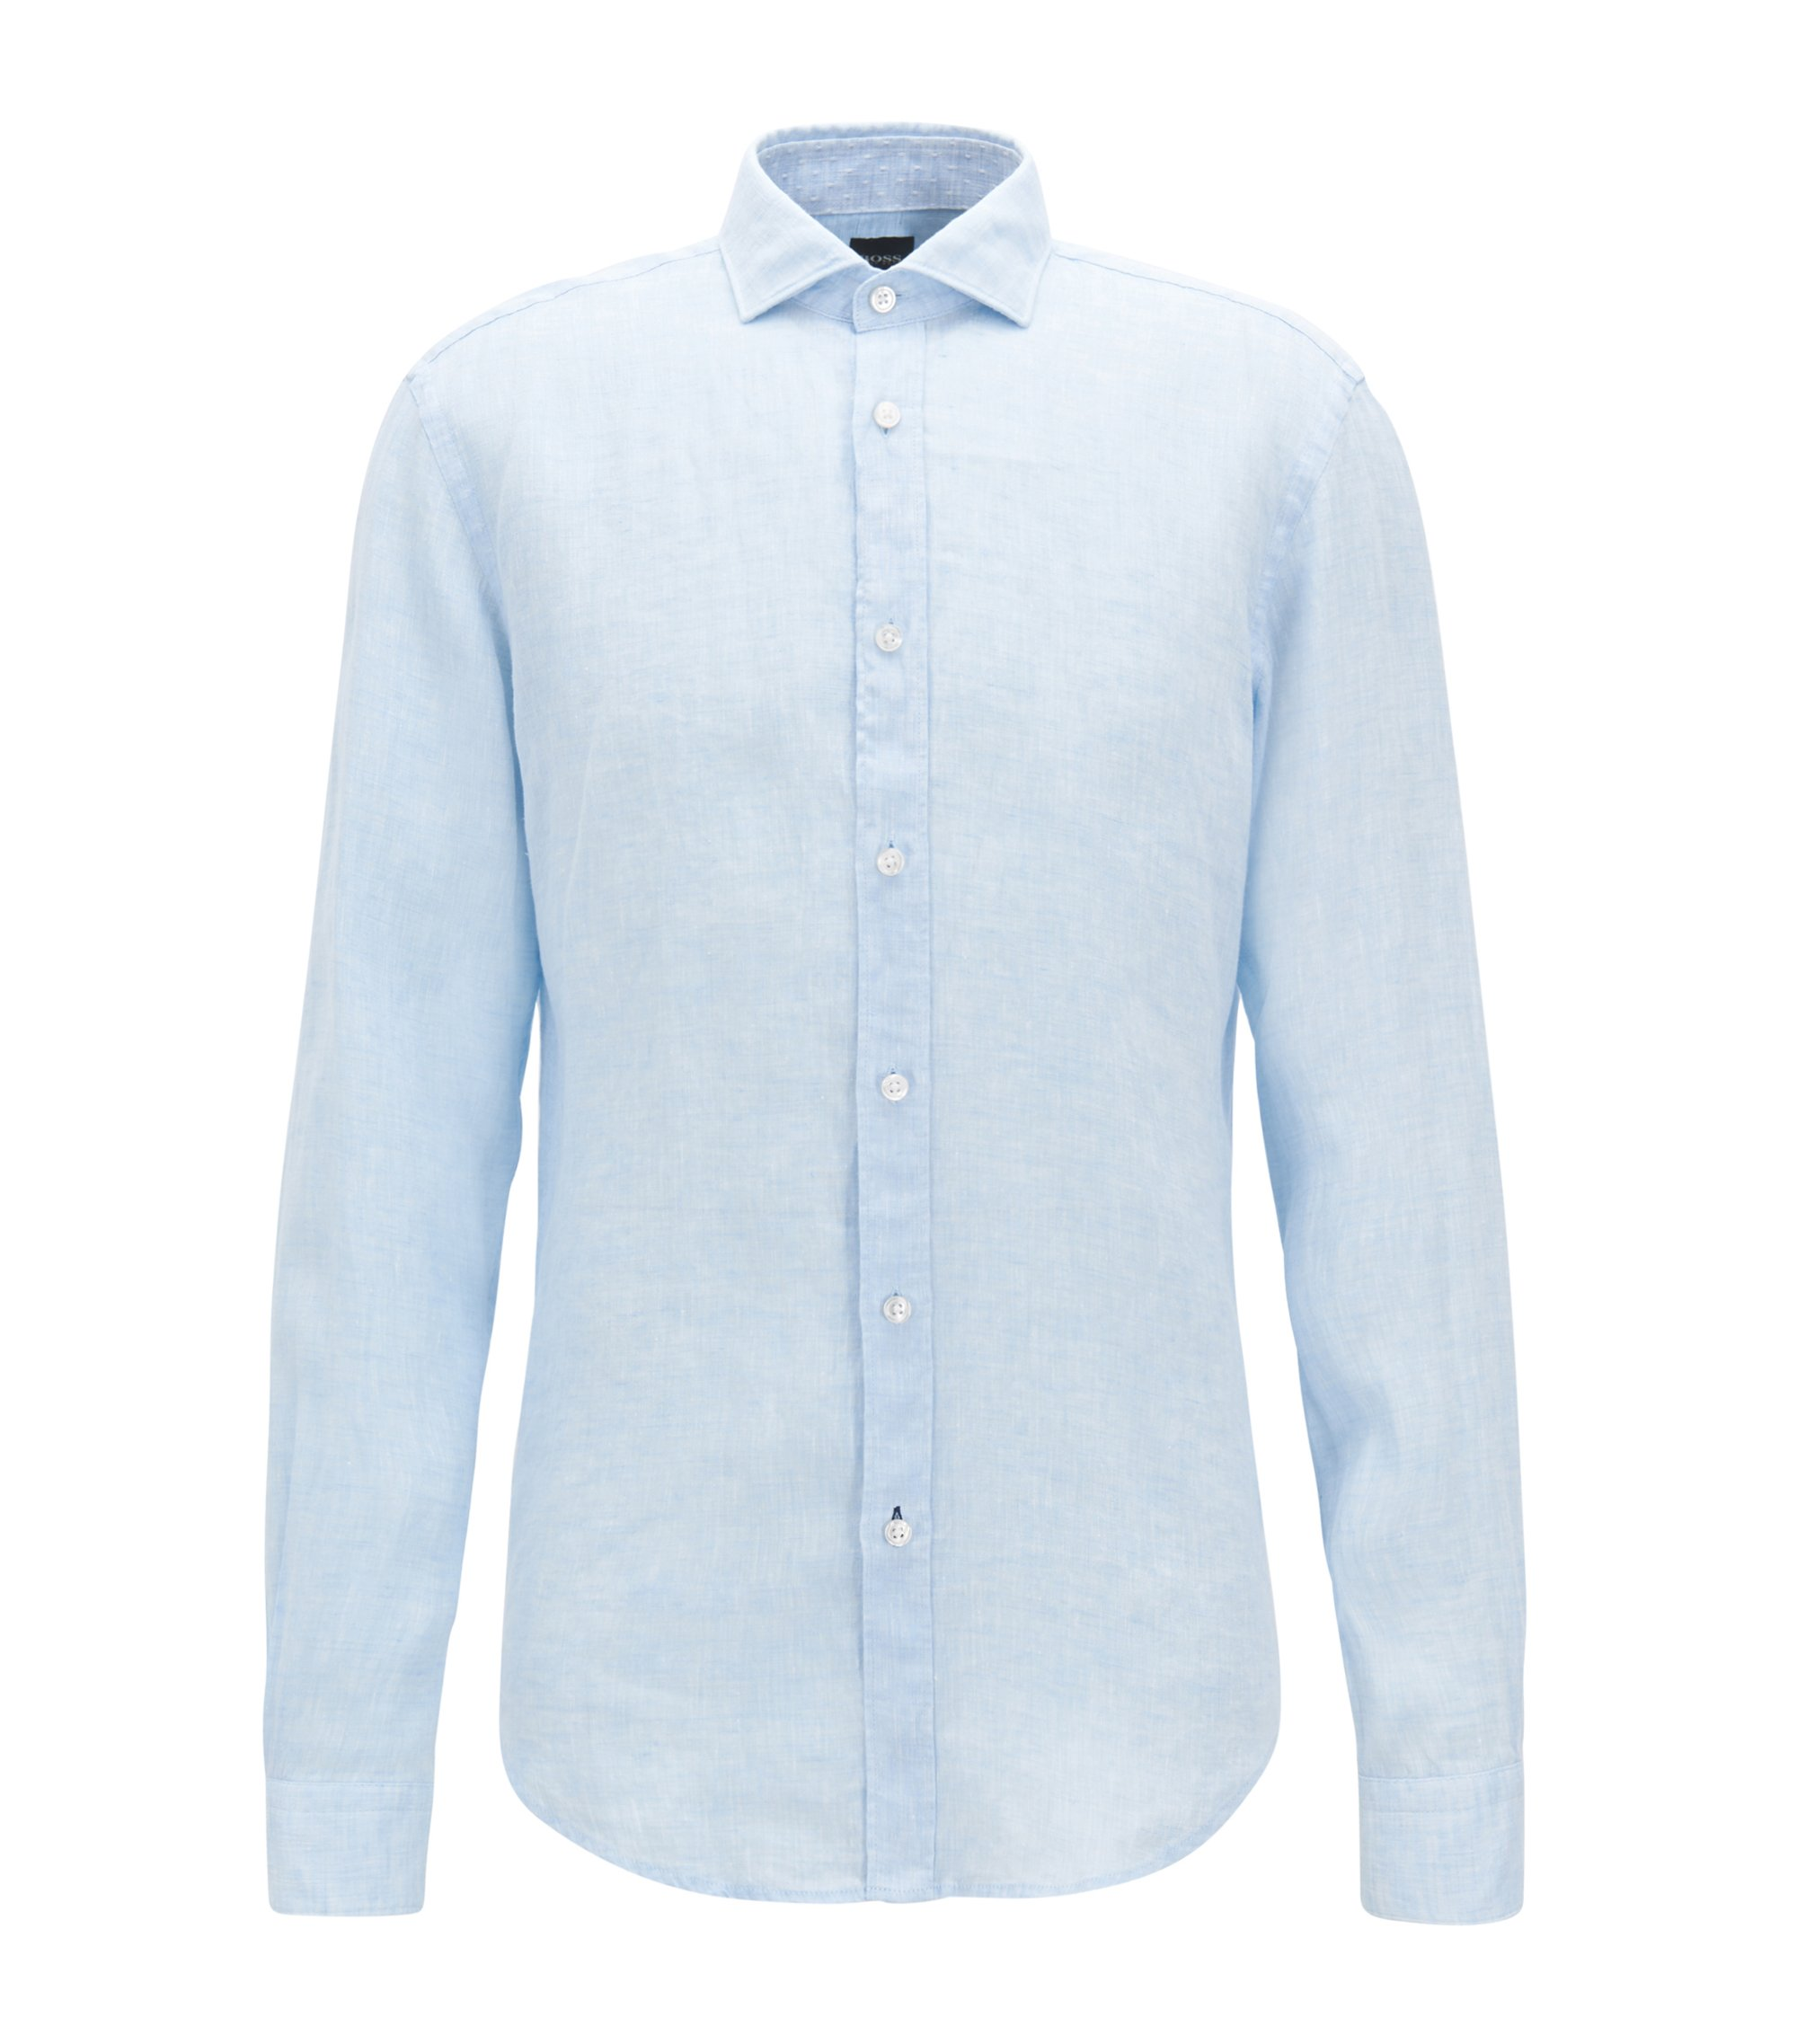 Slub Linen Sport Shirt, Slim Fit | Ridley, Dark Blue